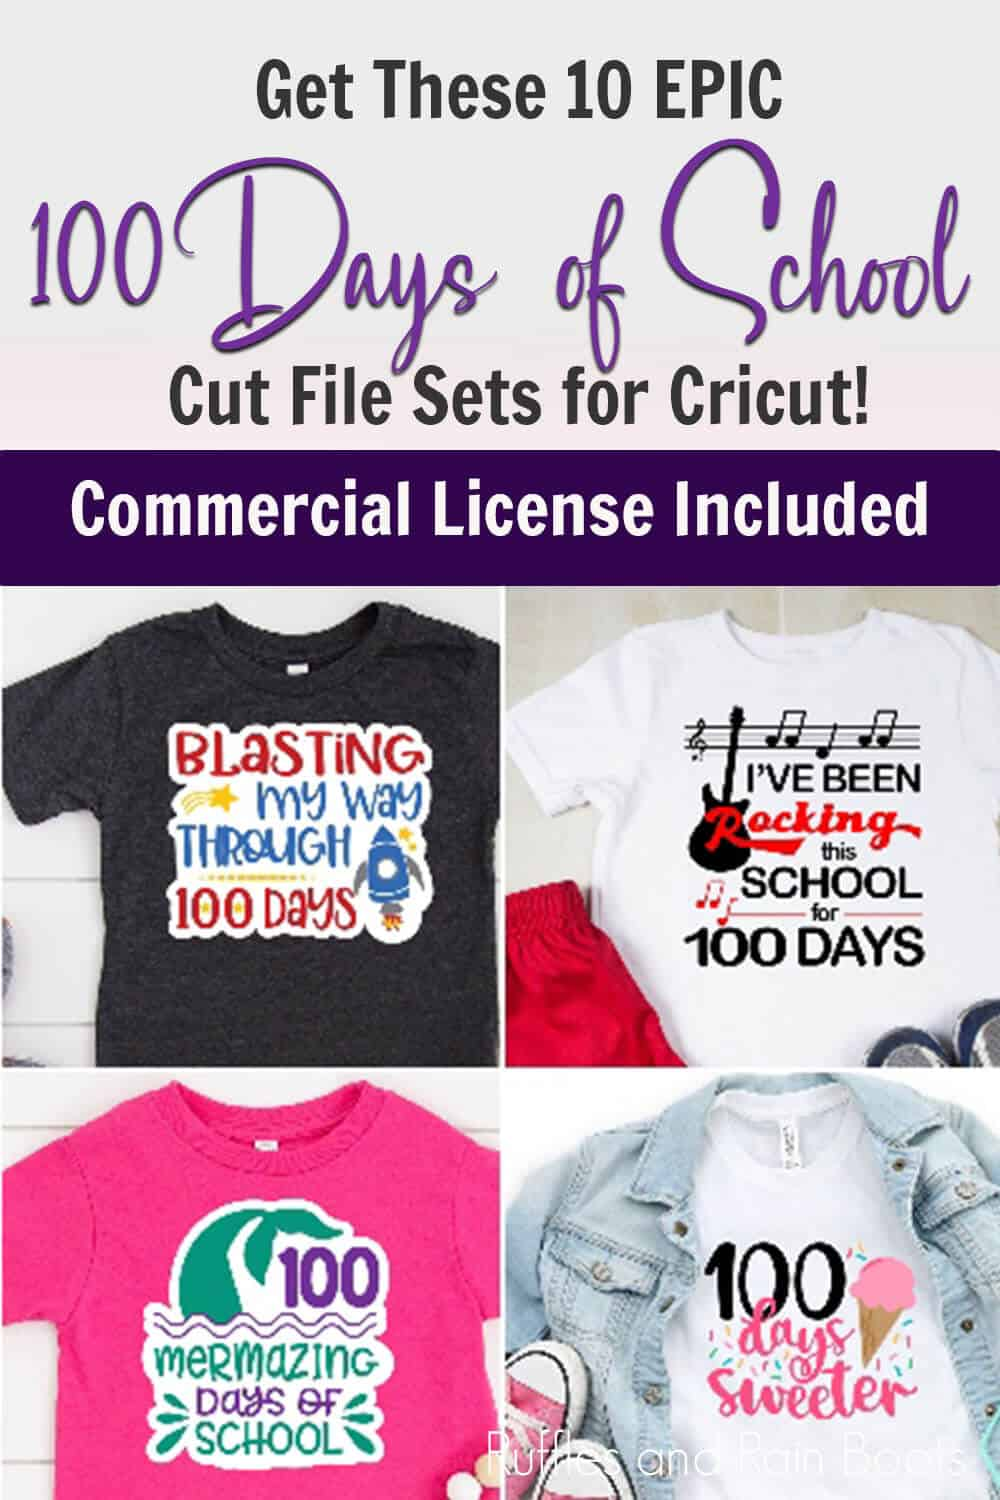 photo collage of 100th day of school shirt designs for cricut or silhouette with text which reads get these 10 epic 100 days of school cut file sets for cricut commercial license included